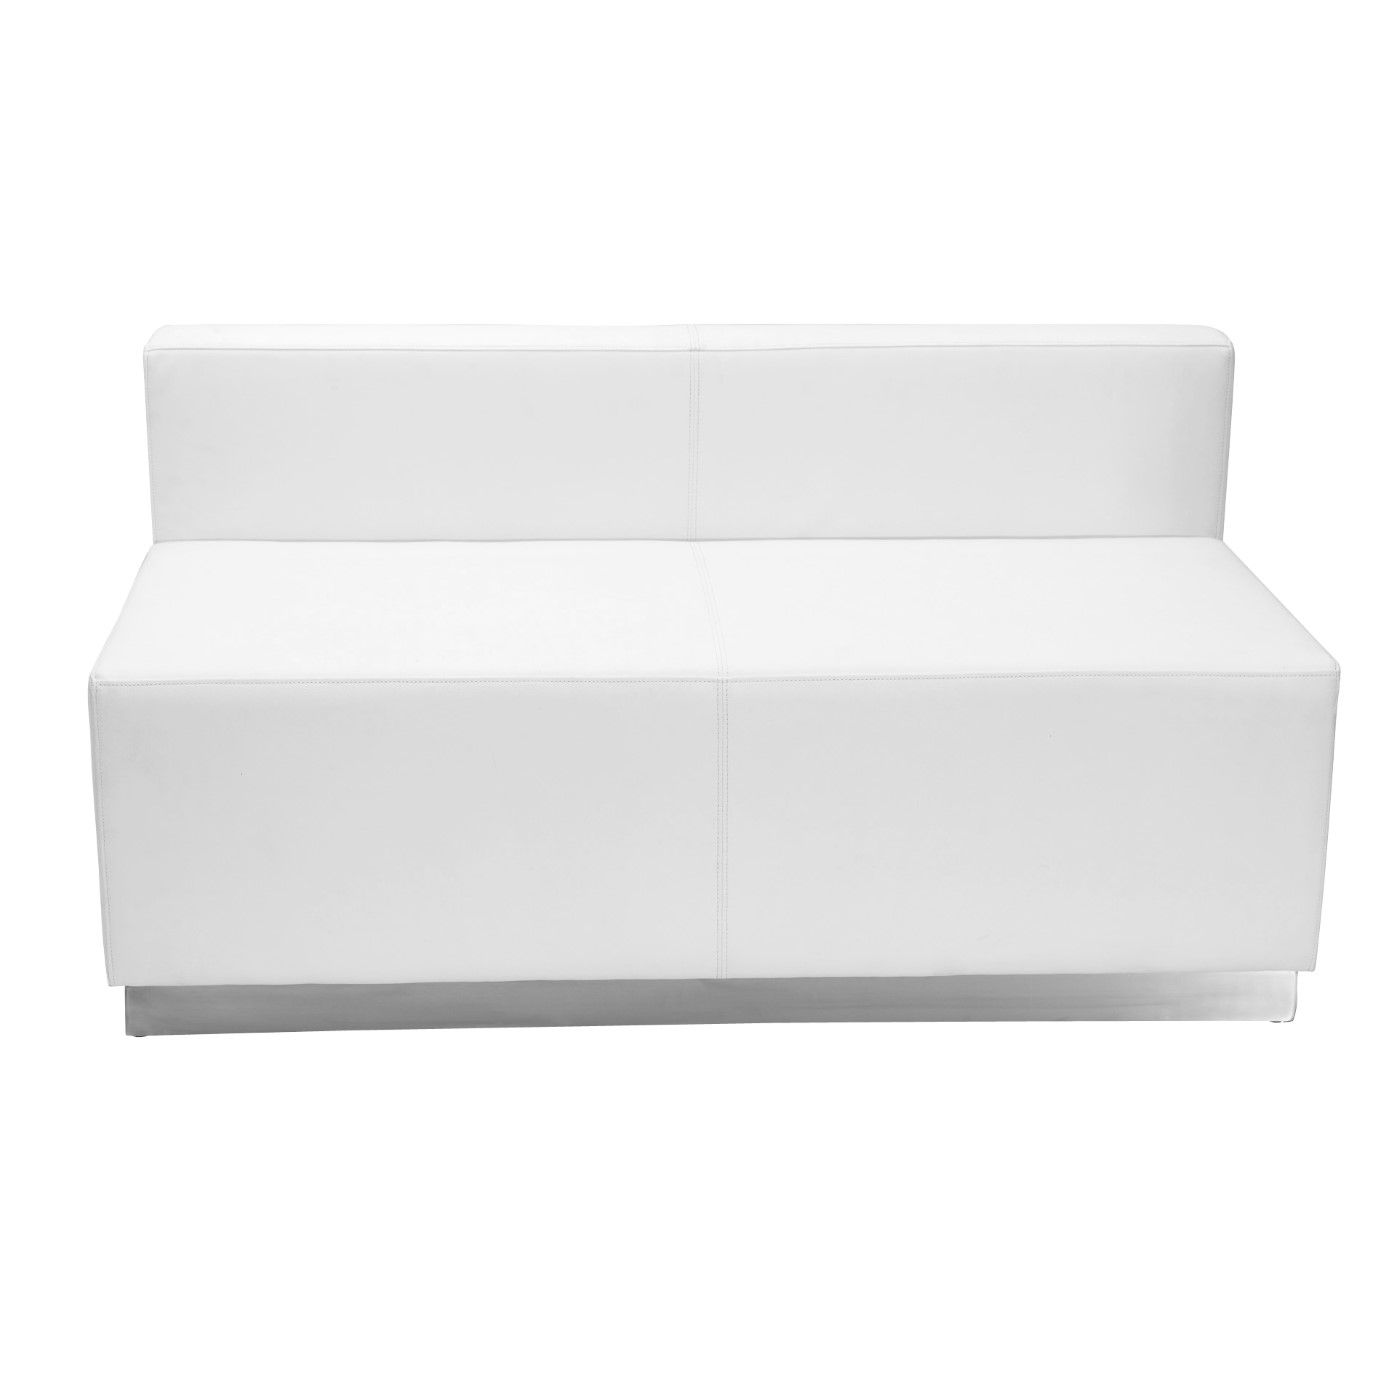 TOUGH ENOUGH Alon Series Melrose White LeatherSoft Loveseat with Brushed Stainless Steel Base